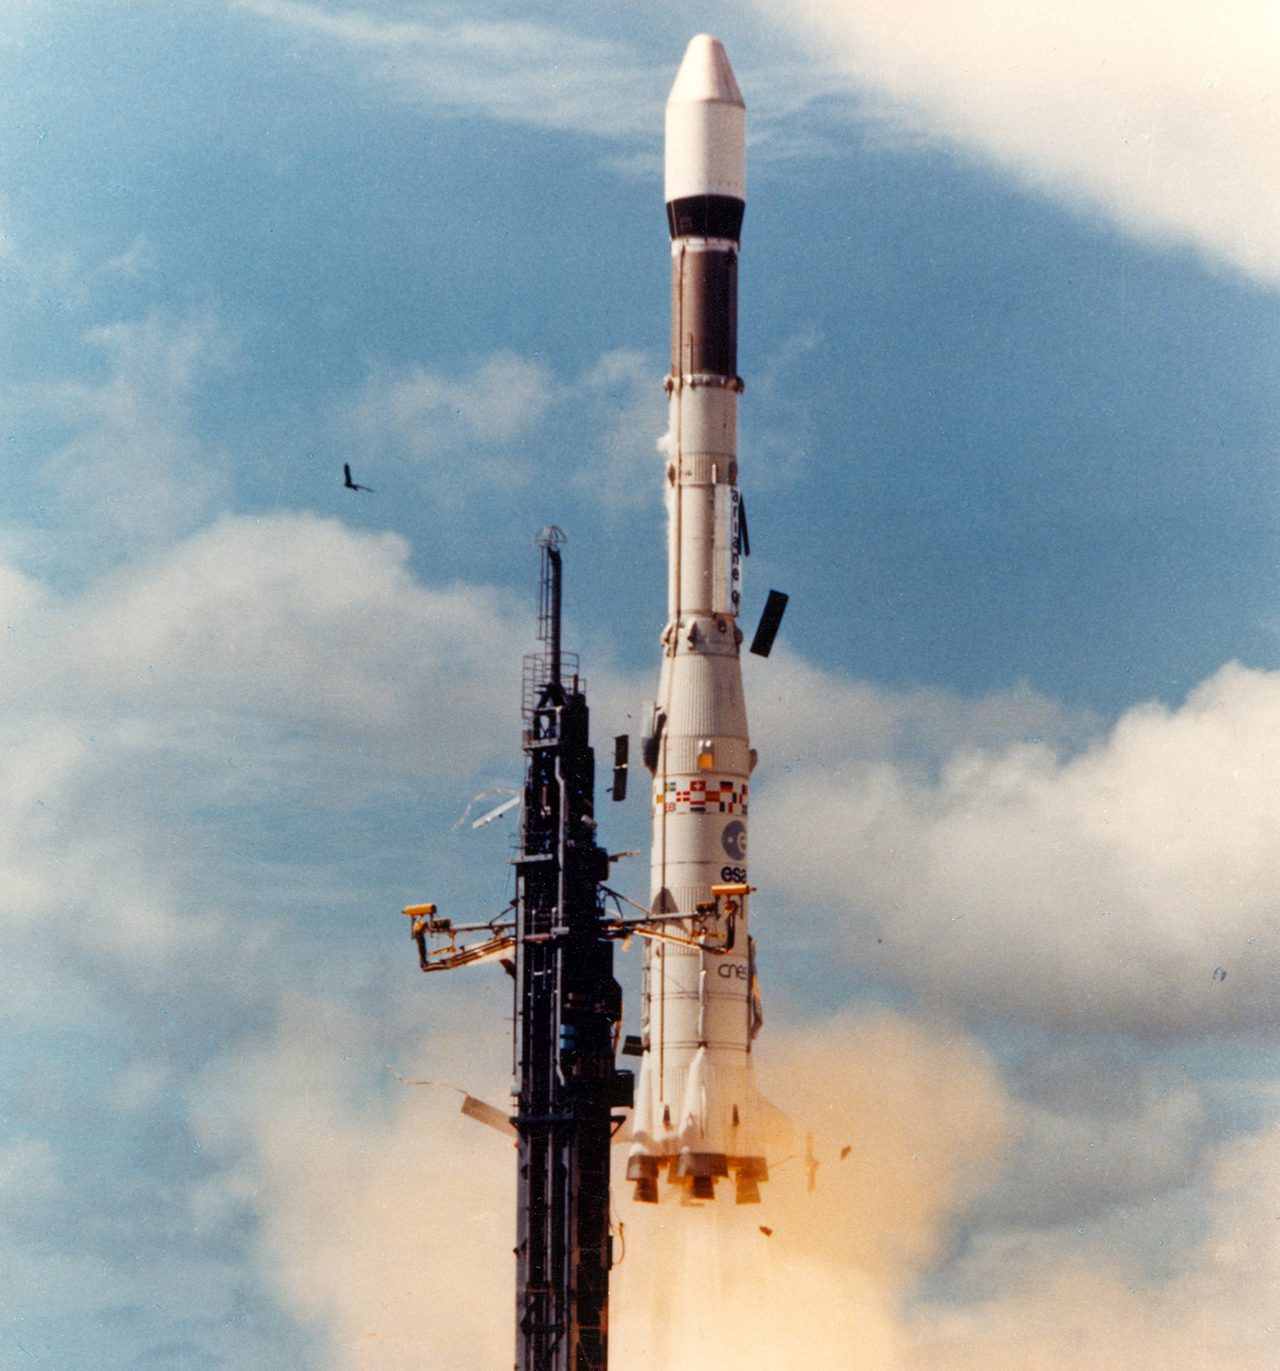 Ariane 1 lifts off on its maiden flight from the Guiana Space Centre in 1979.